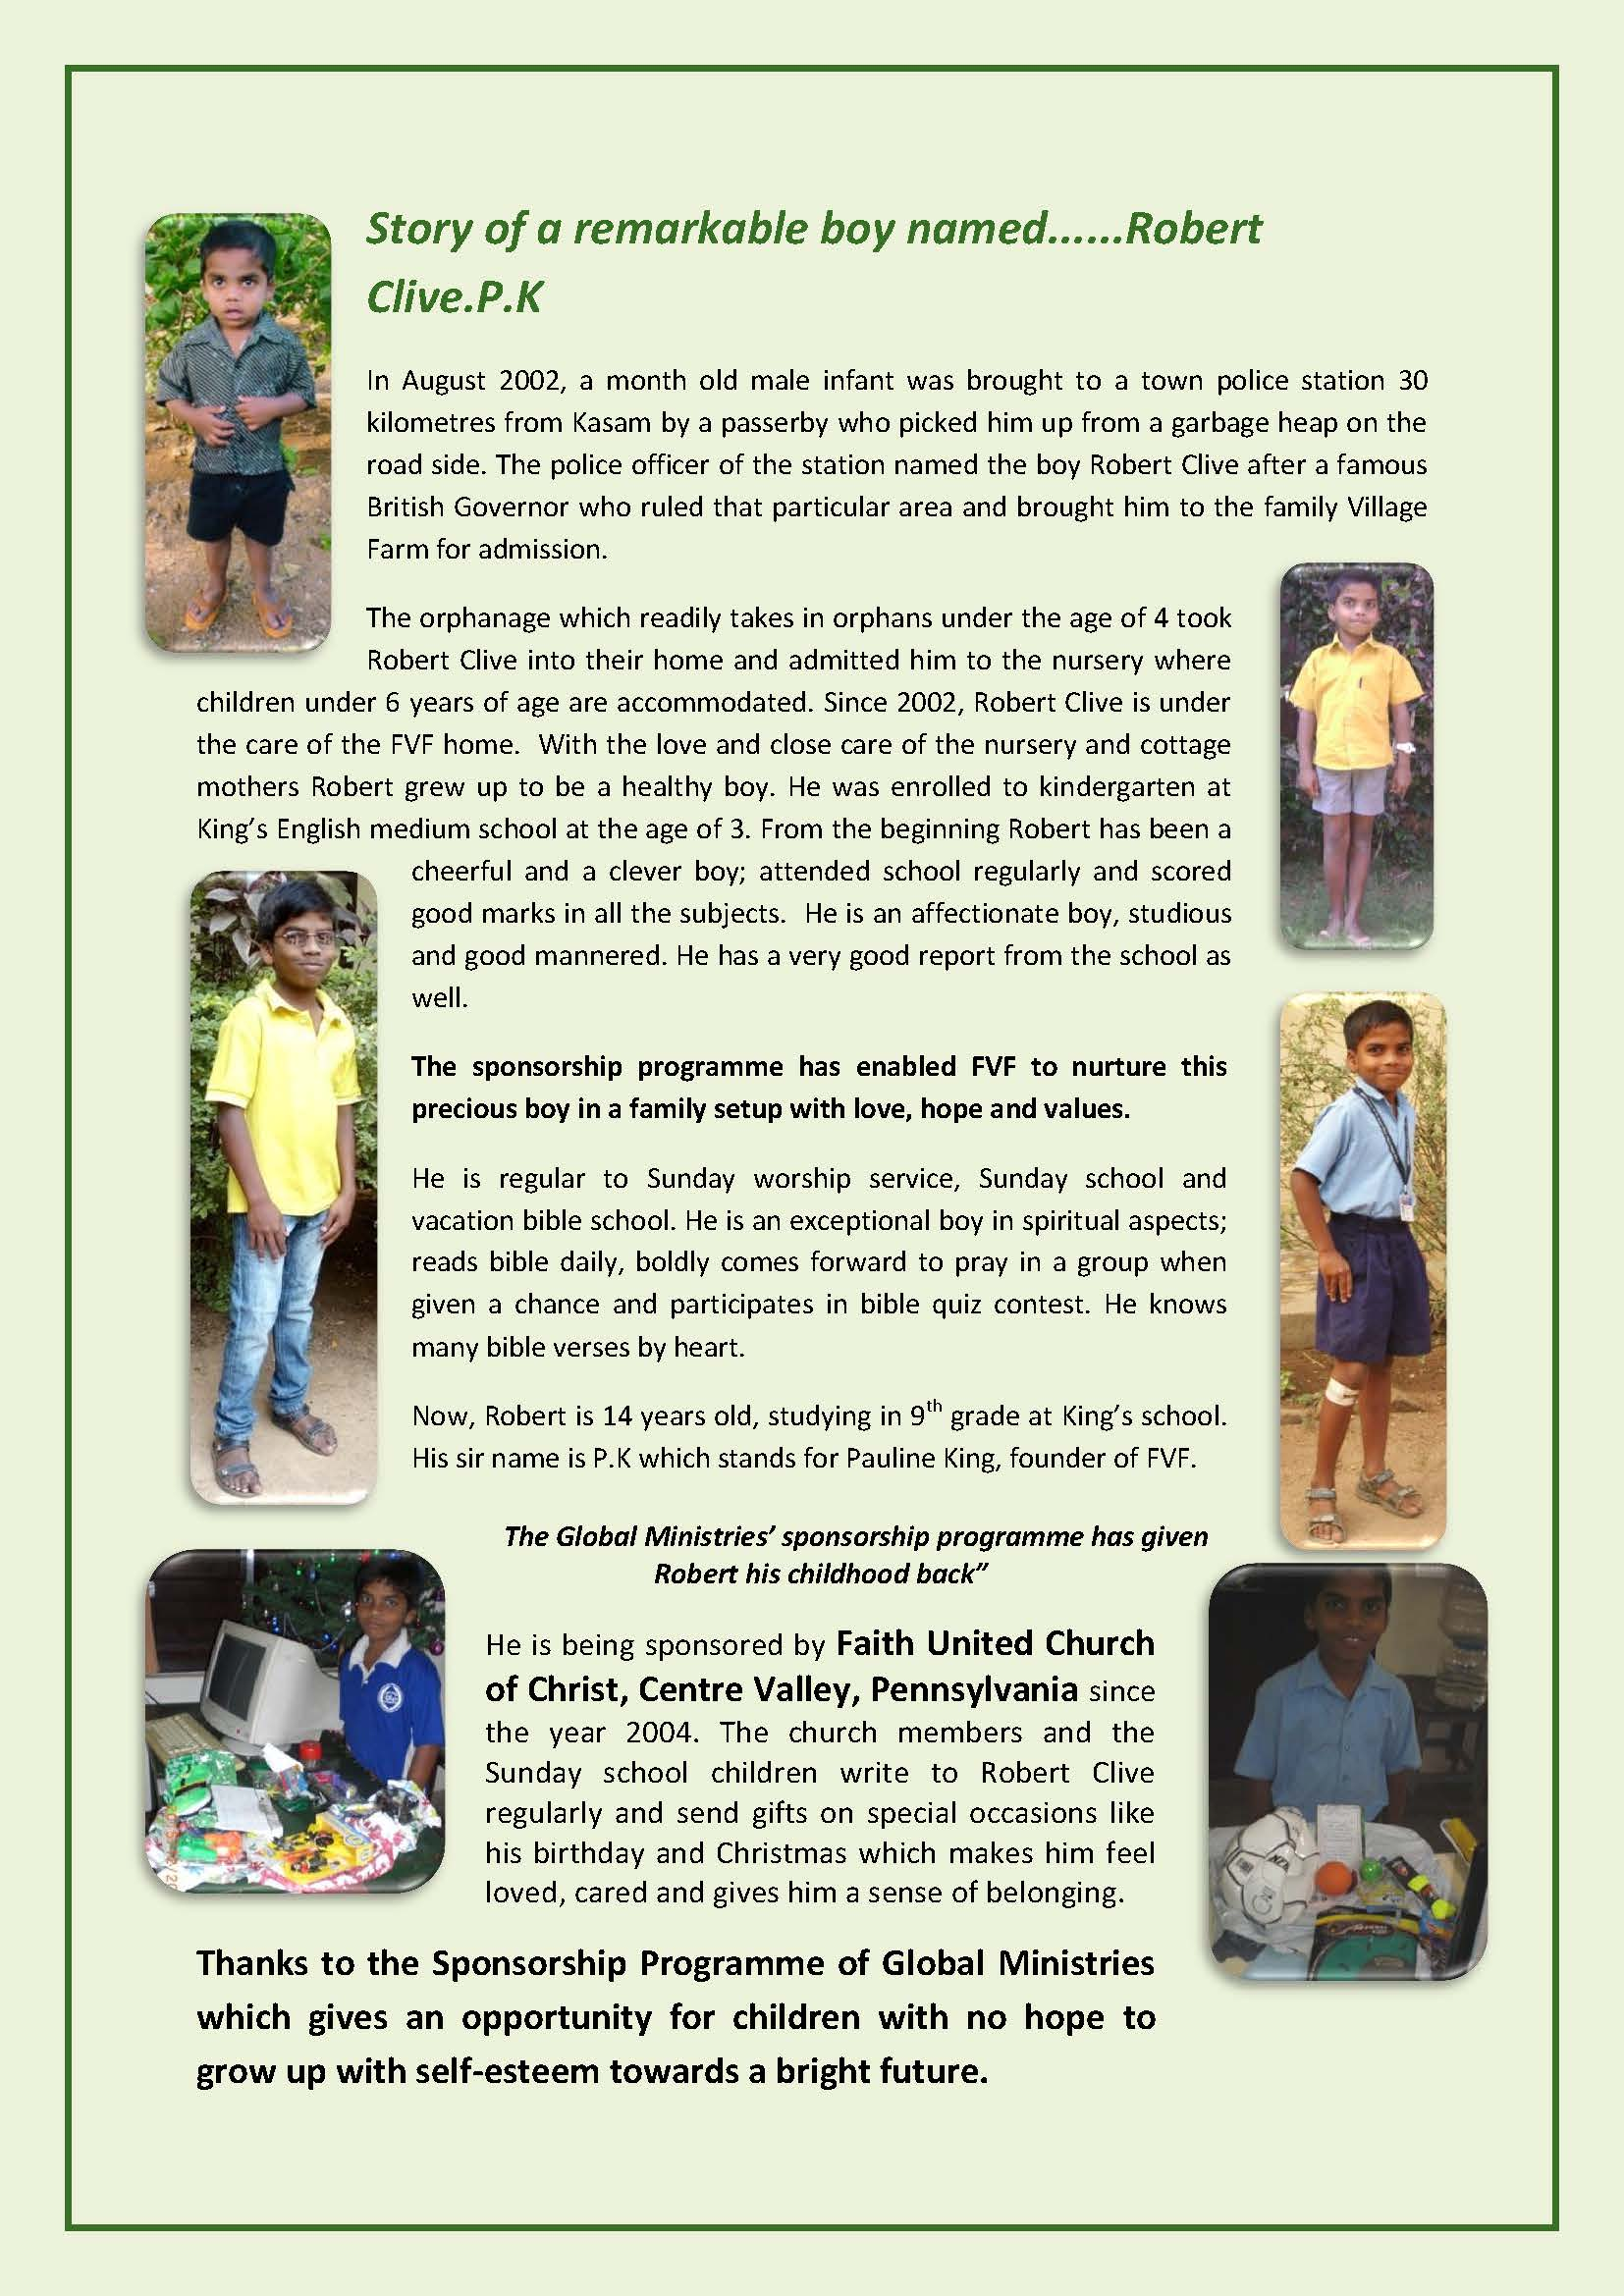 Article_for_Global_Ministries_Page_2.jpg